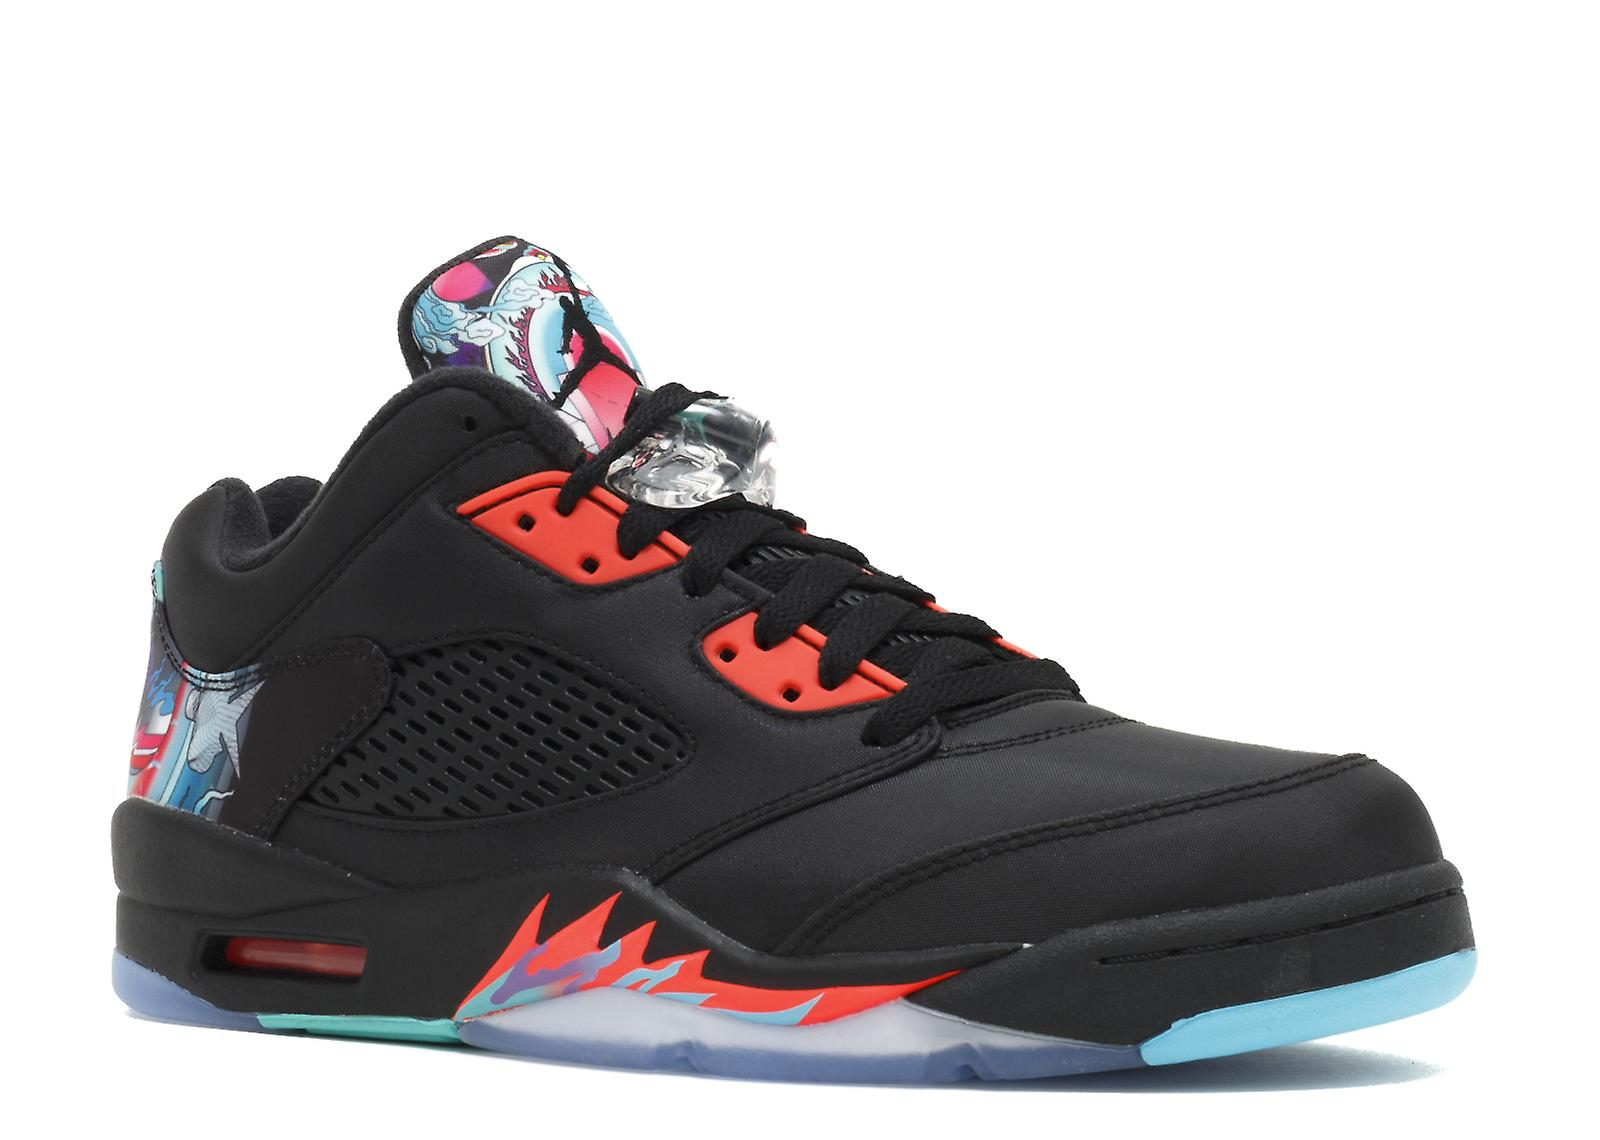 Air Jordan 5 Retro Women's Shoe